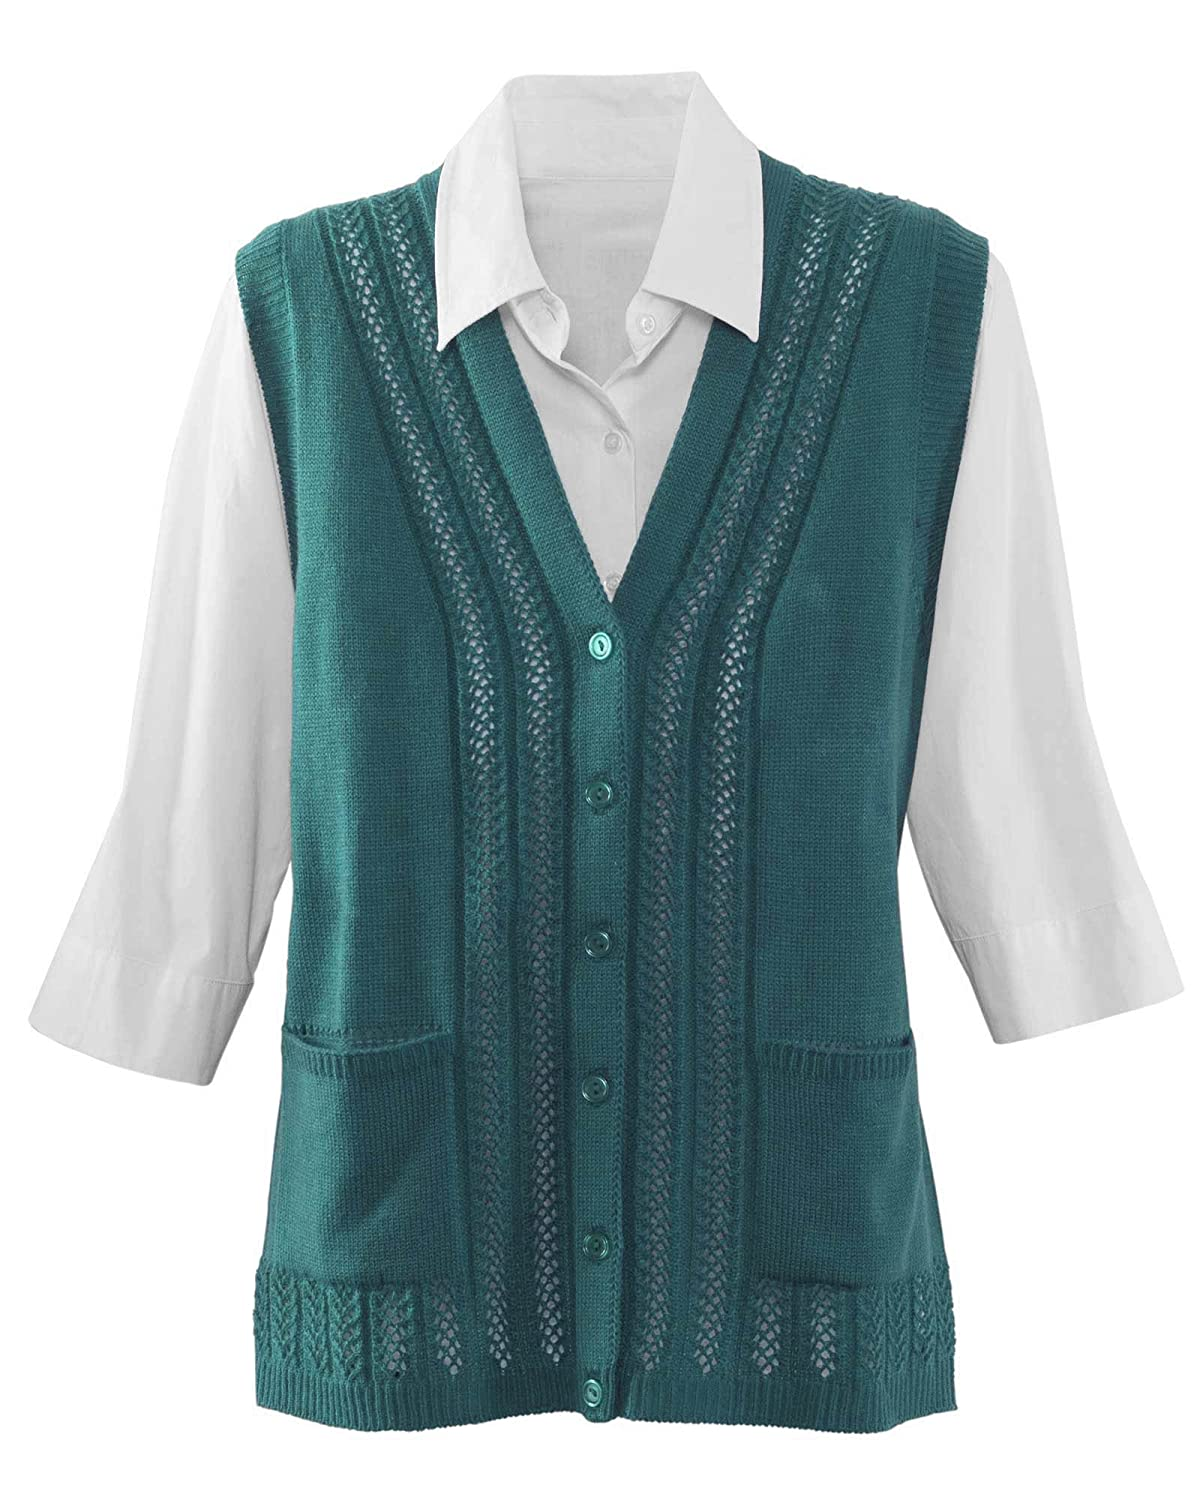 Ladies' Colorful 1920s Sweaters and Cardigans History National Classic Sweater Vest  AT vintagedancer.com